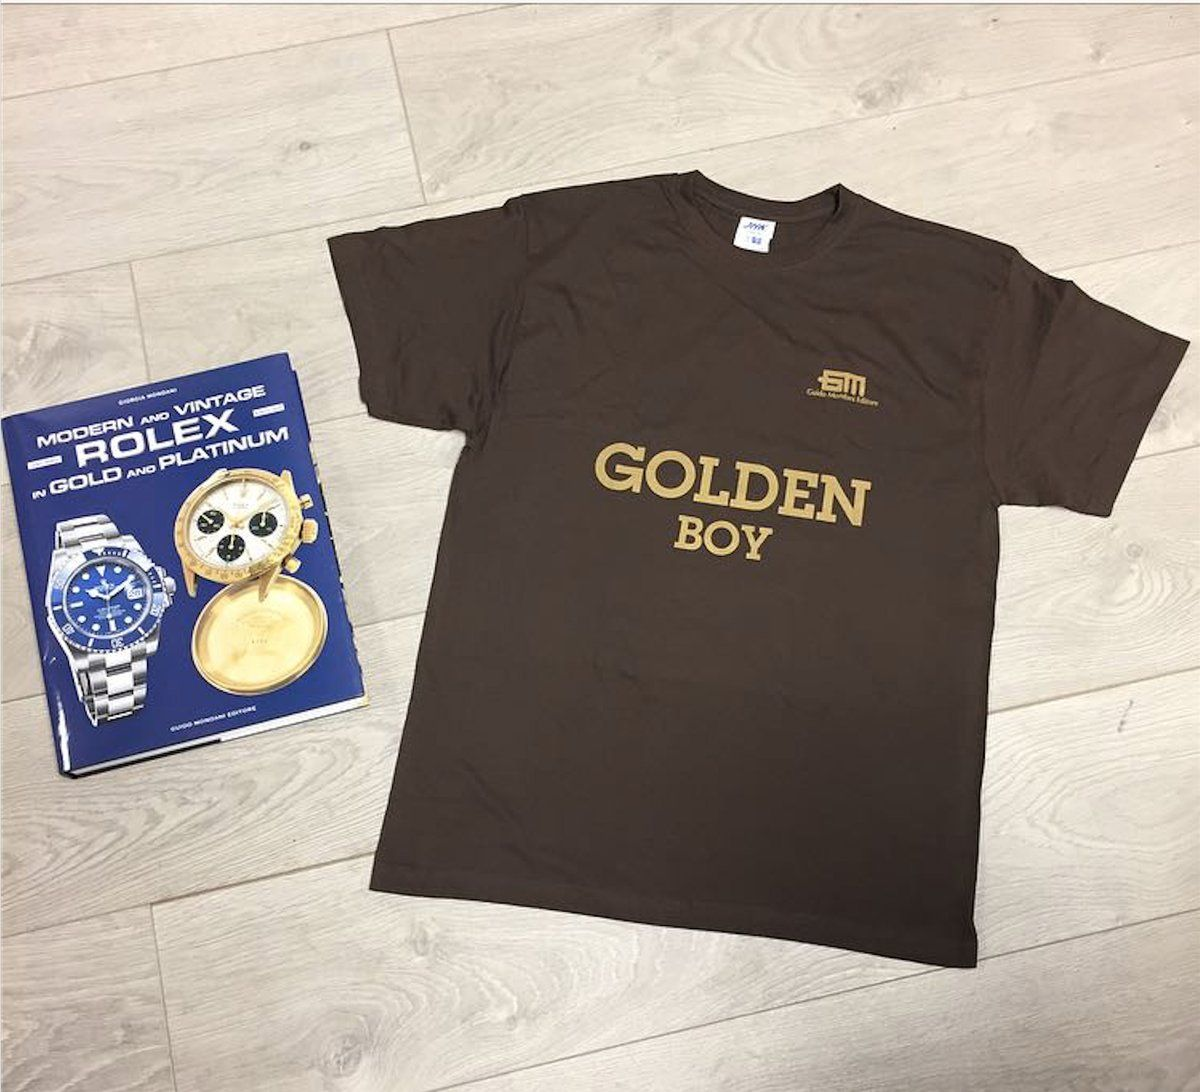 """Together with the book you will receive the """"Golden Boy"""" t-shirt as gift Mondani Books (@mondanibooks)   Twitter"""